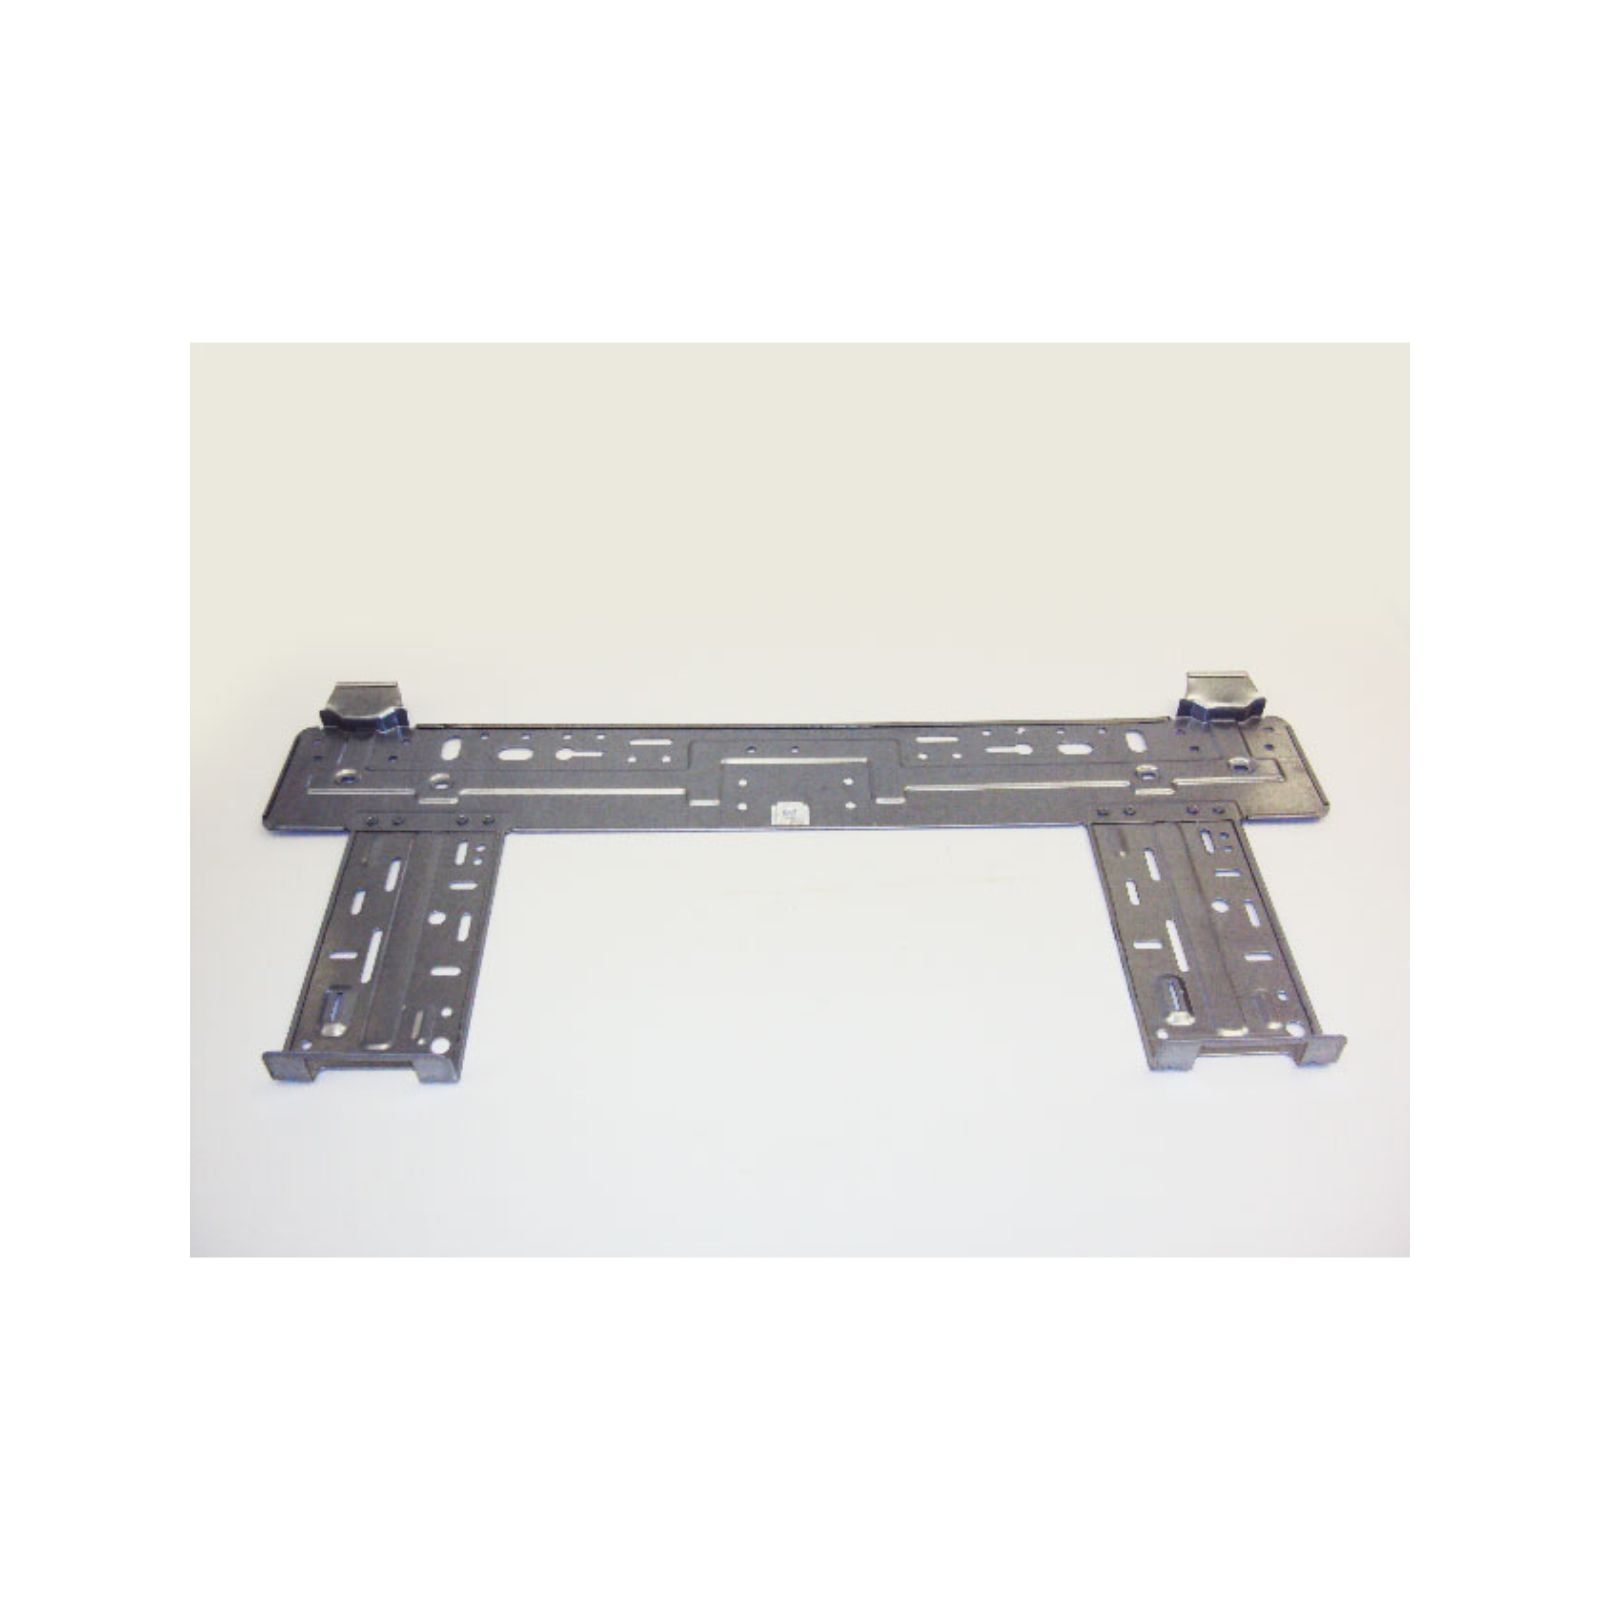 GREE 01252008 - Wall Mounting Frame